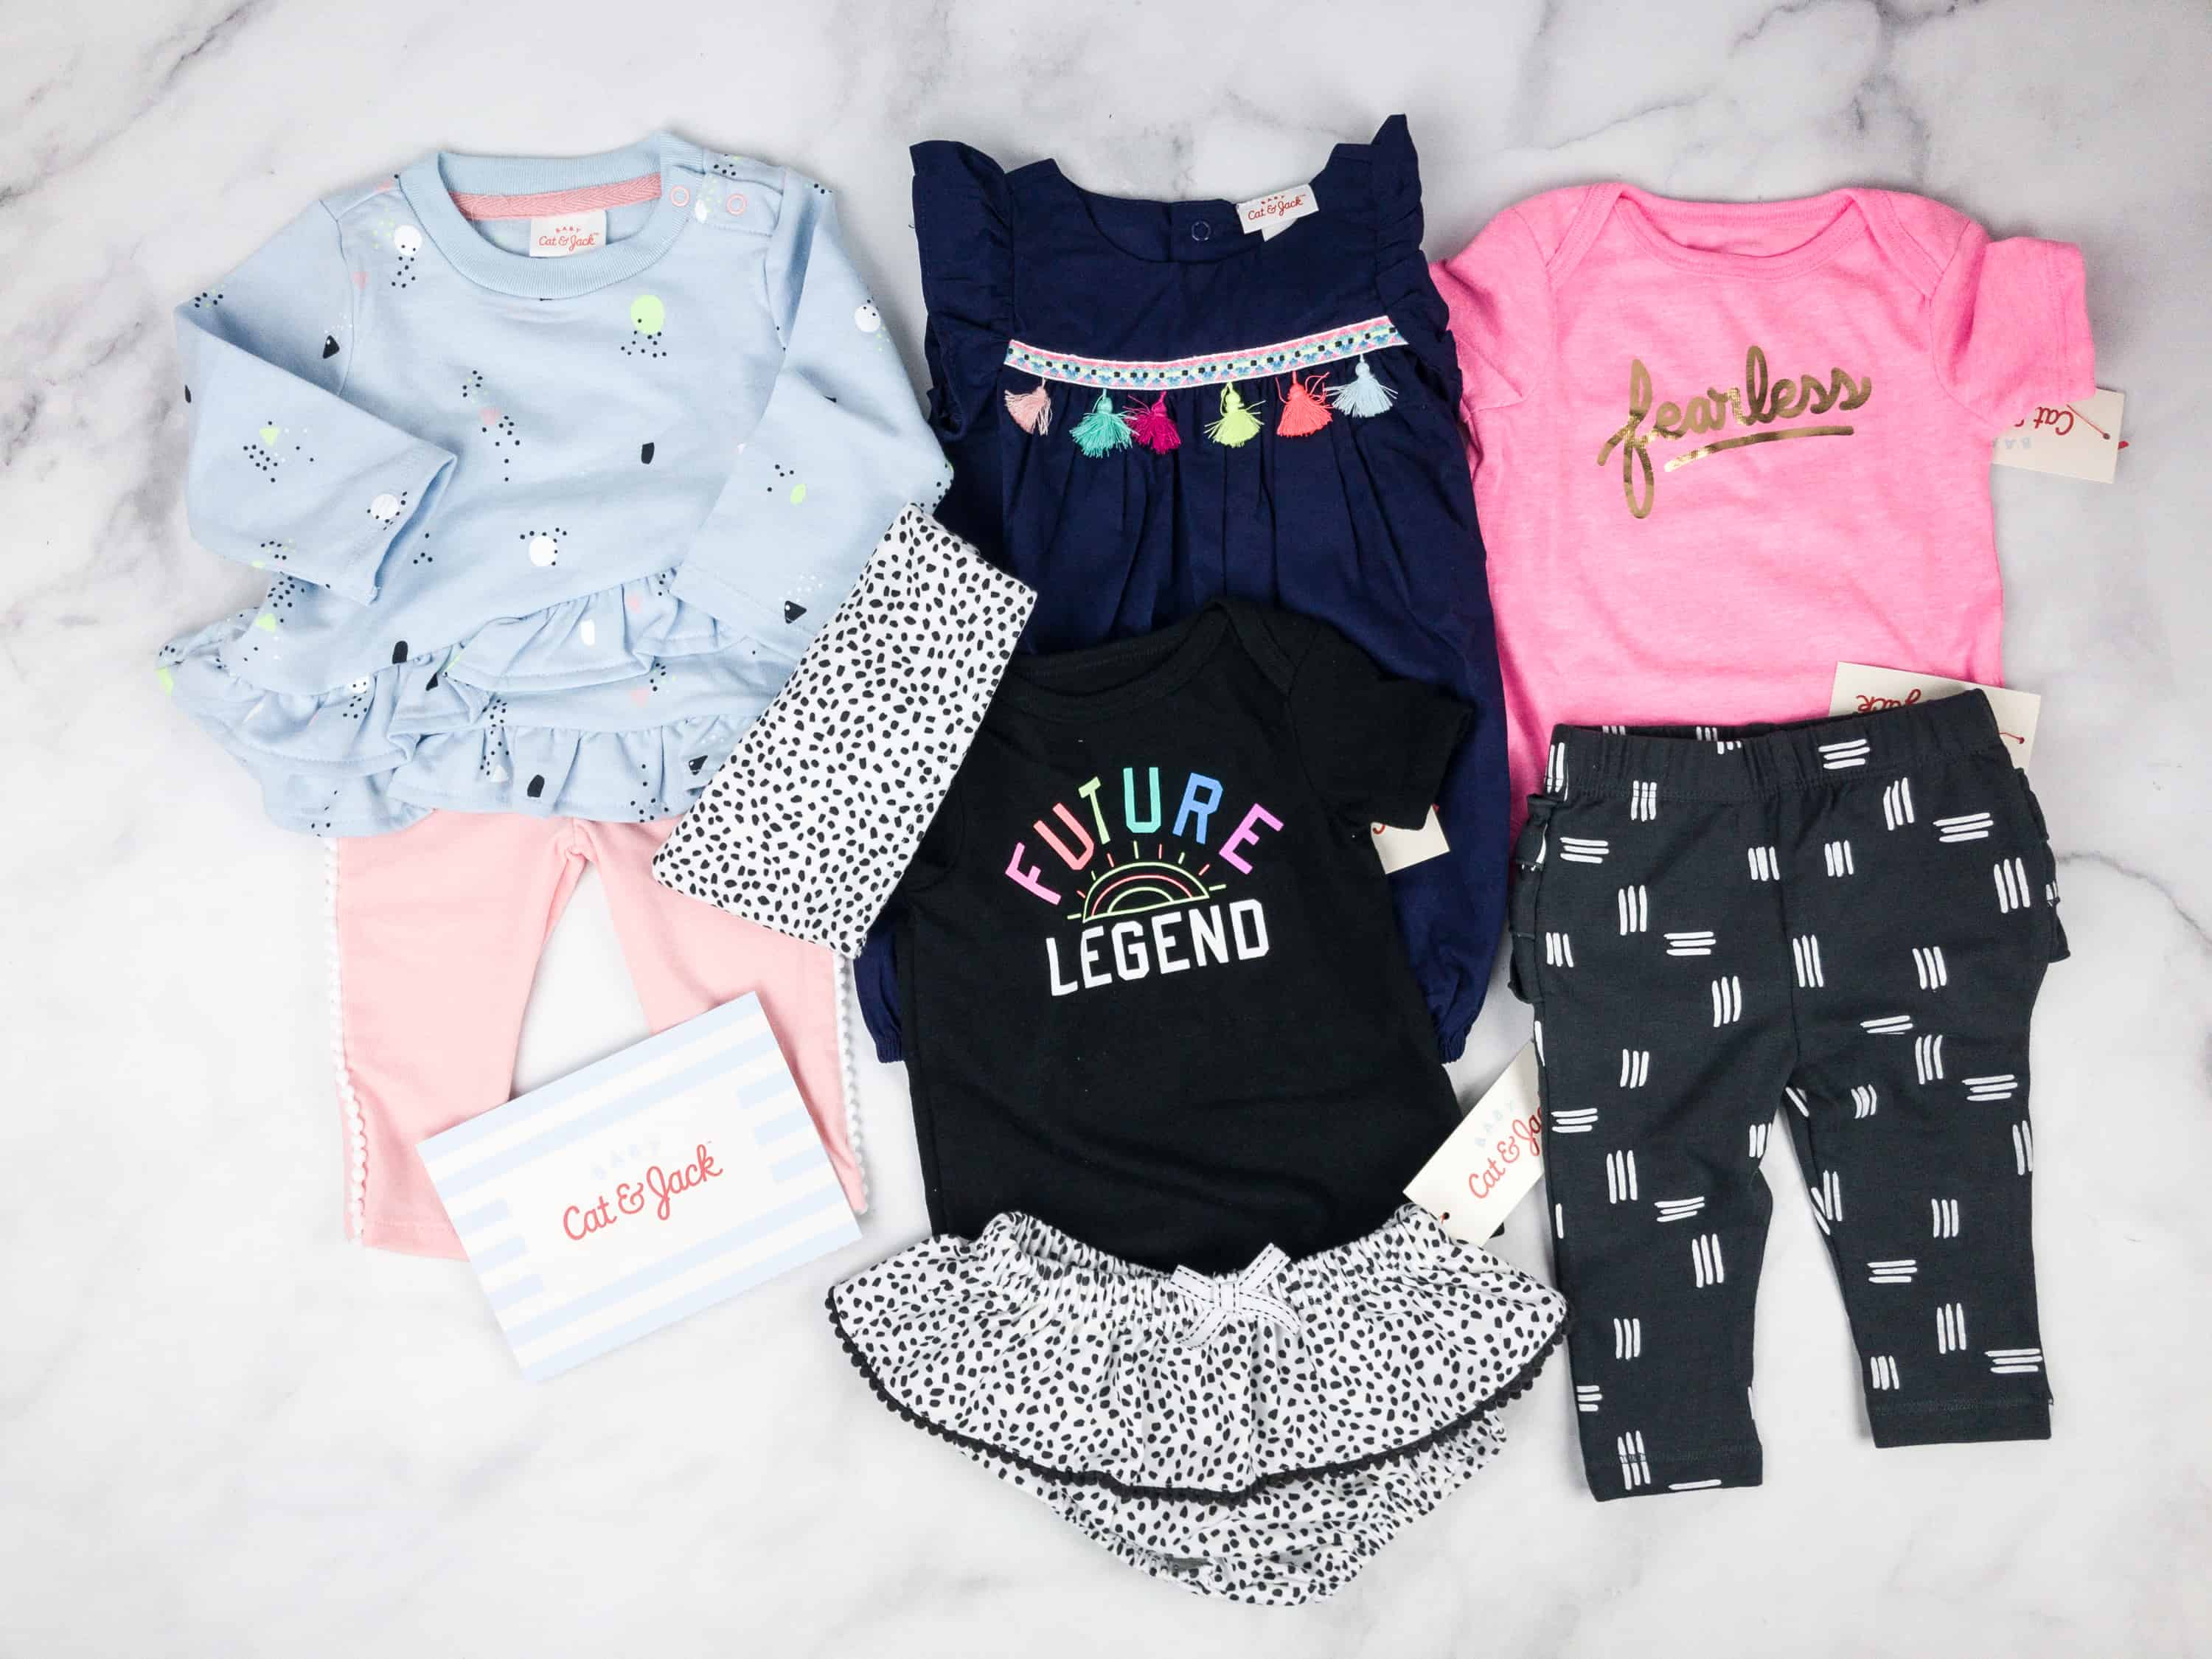 Tar s Cat & Jack Baby Outfit Box Subscription Box Review Spring